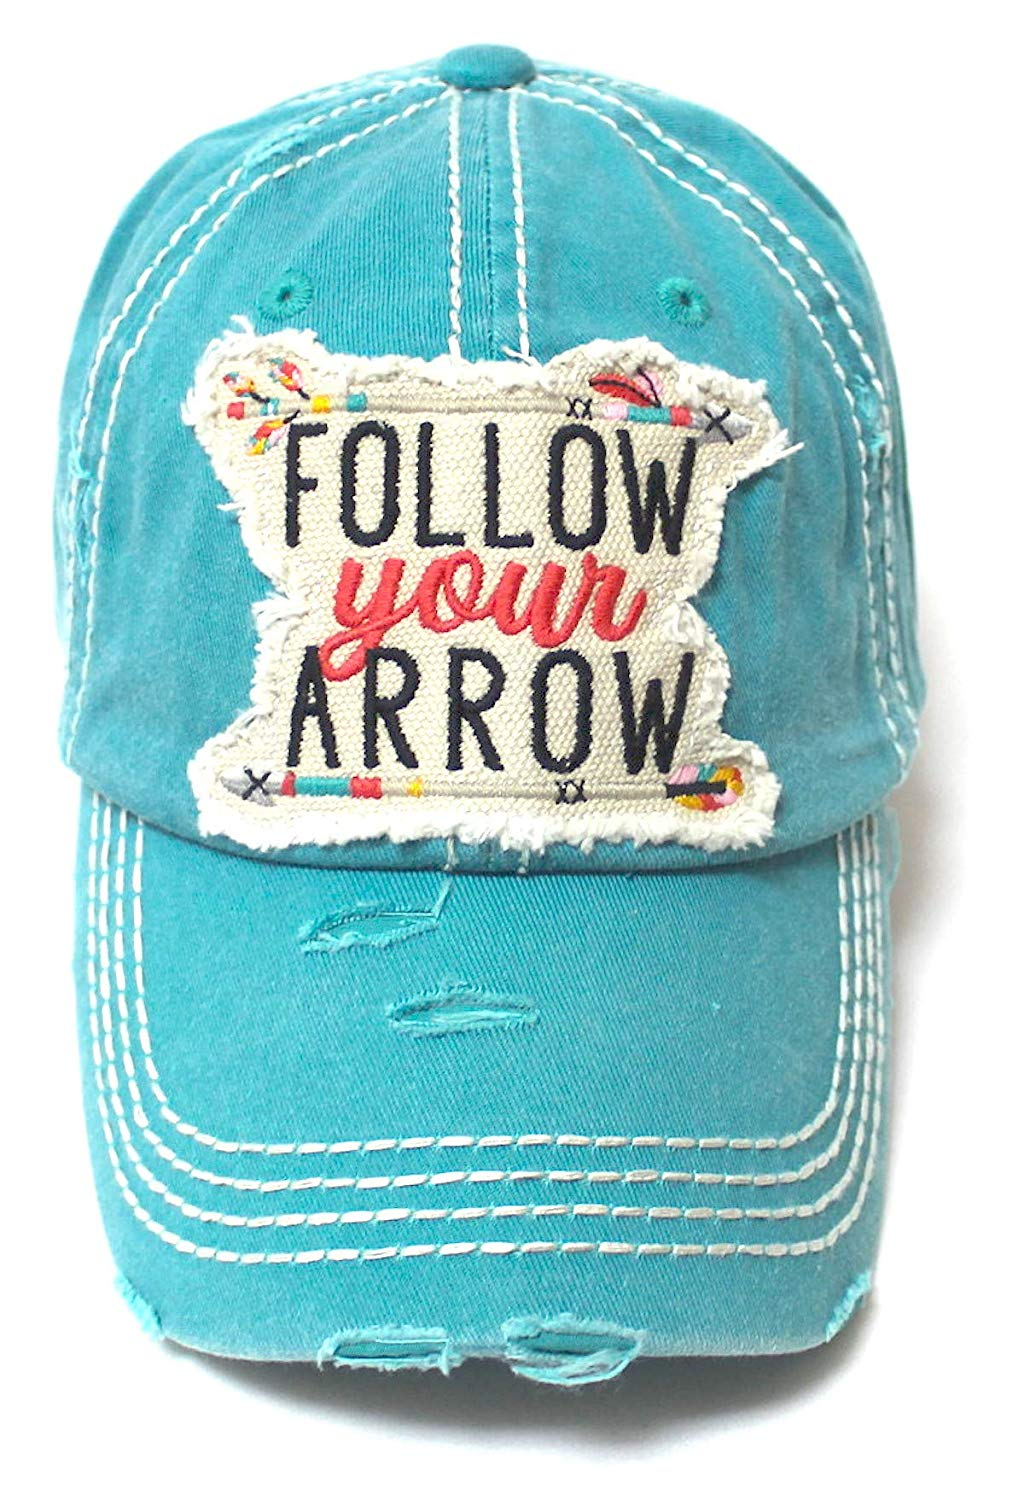 Camping Ballcap Follow Your Arrow Patch Embroidery Adjustable Baseball Hat, Turquoise Blue - Caps 'N Vintage